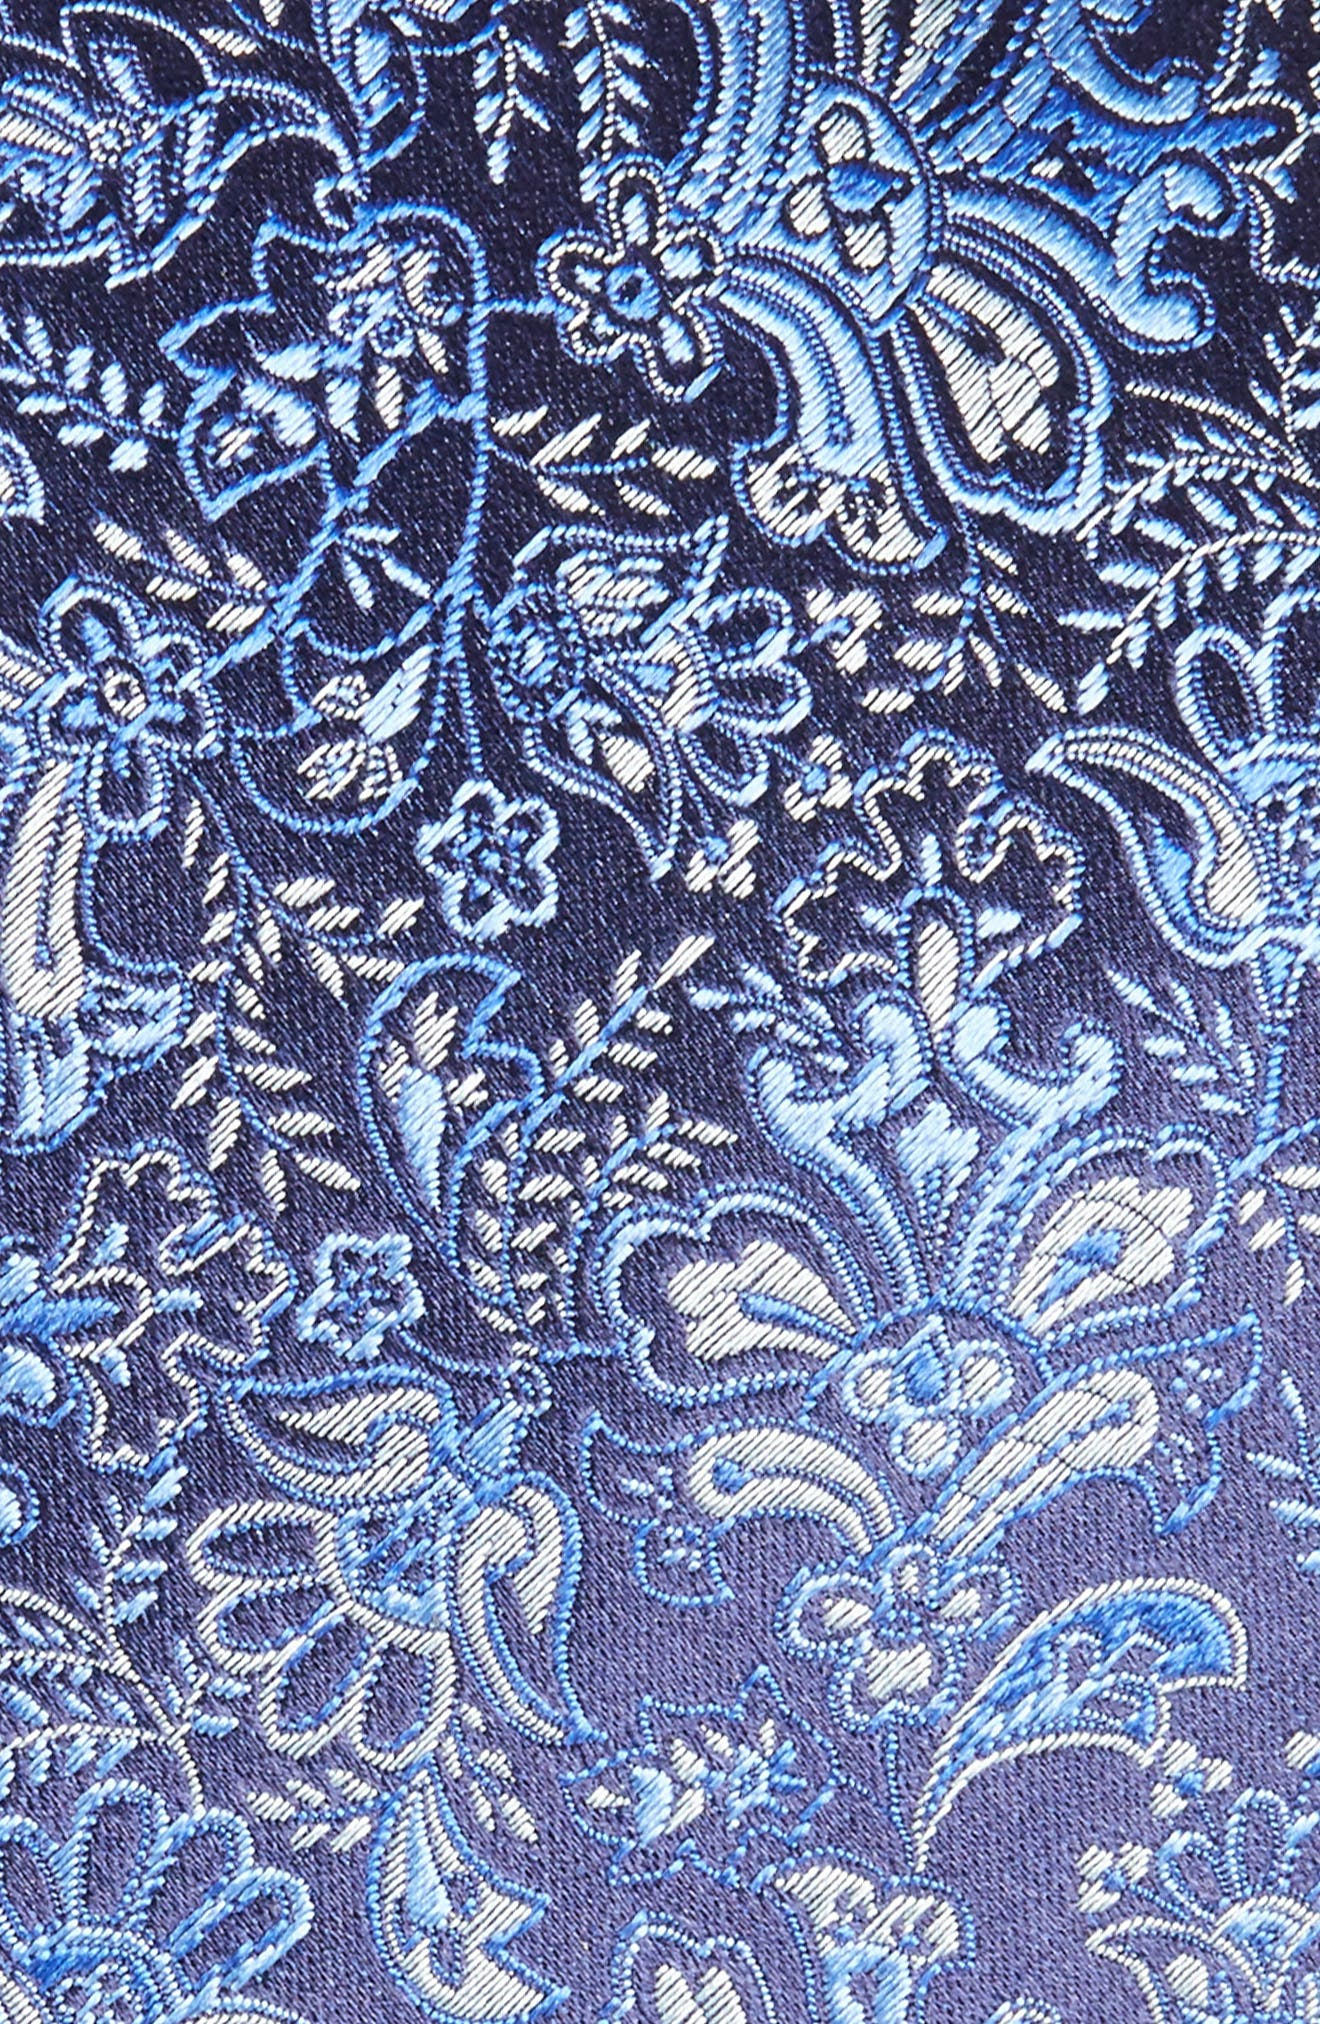 Paisley Silk Tie,                             Alternate thumbnail 2, color,                             410